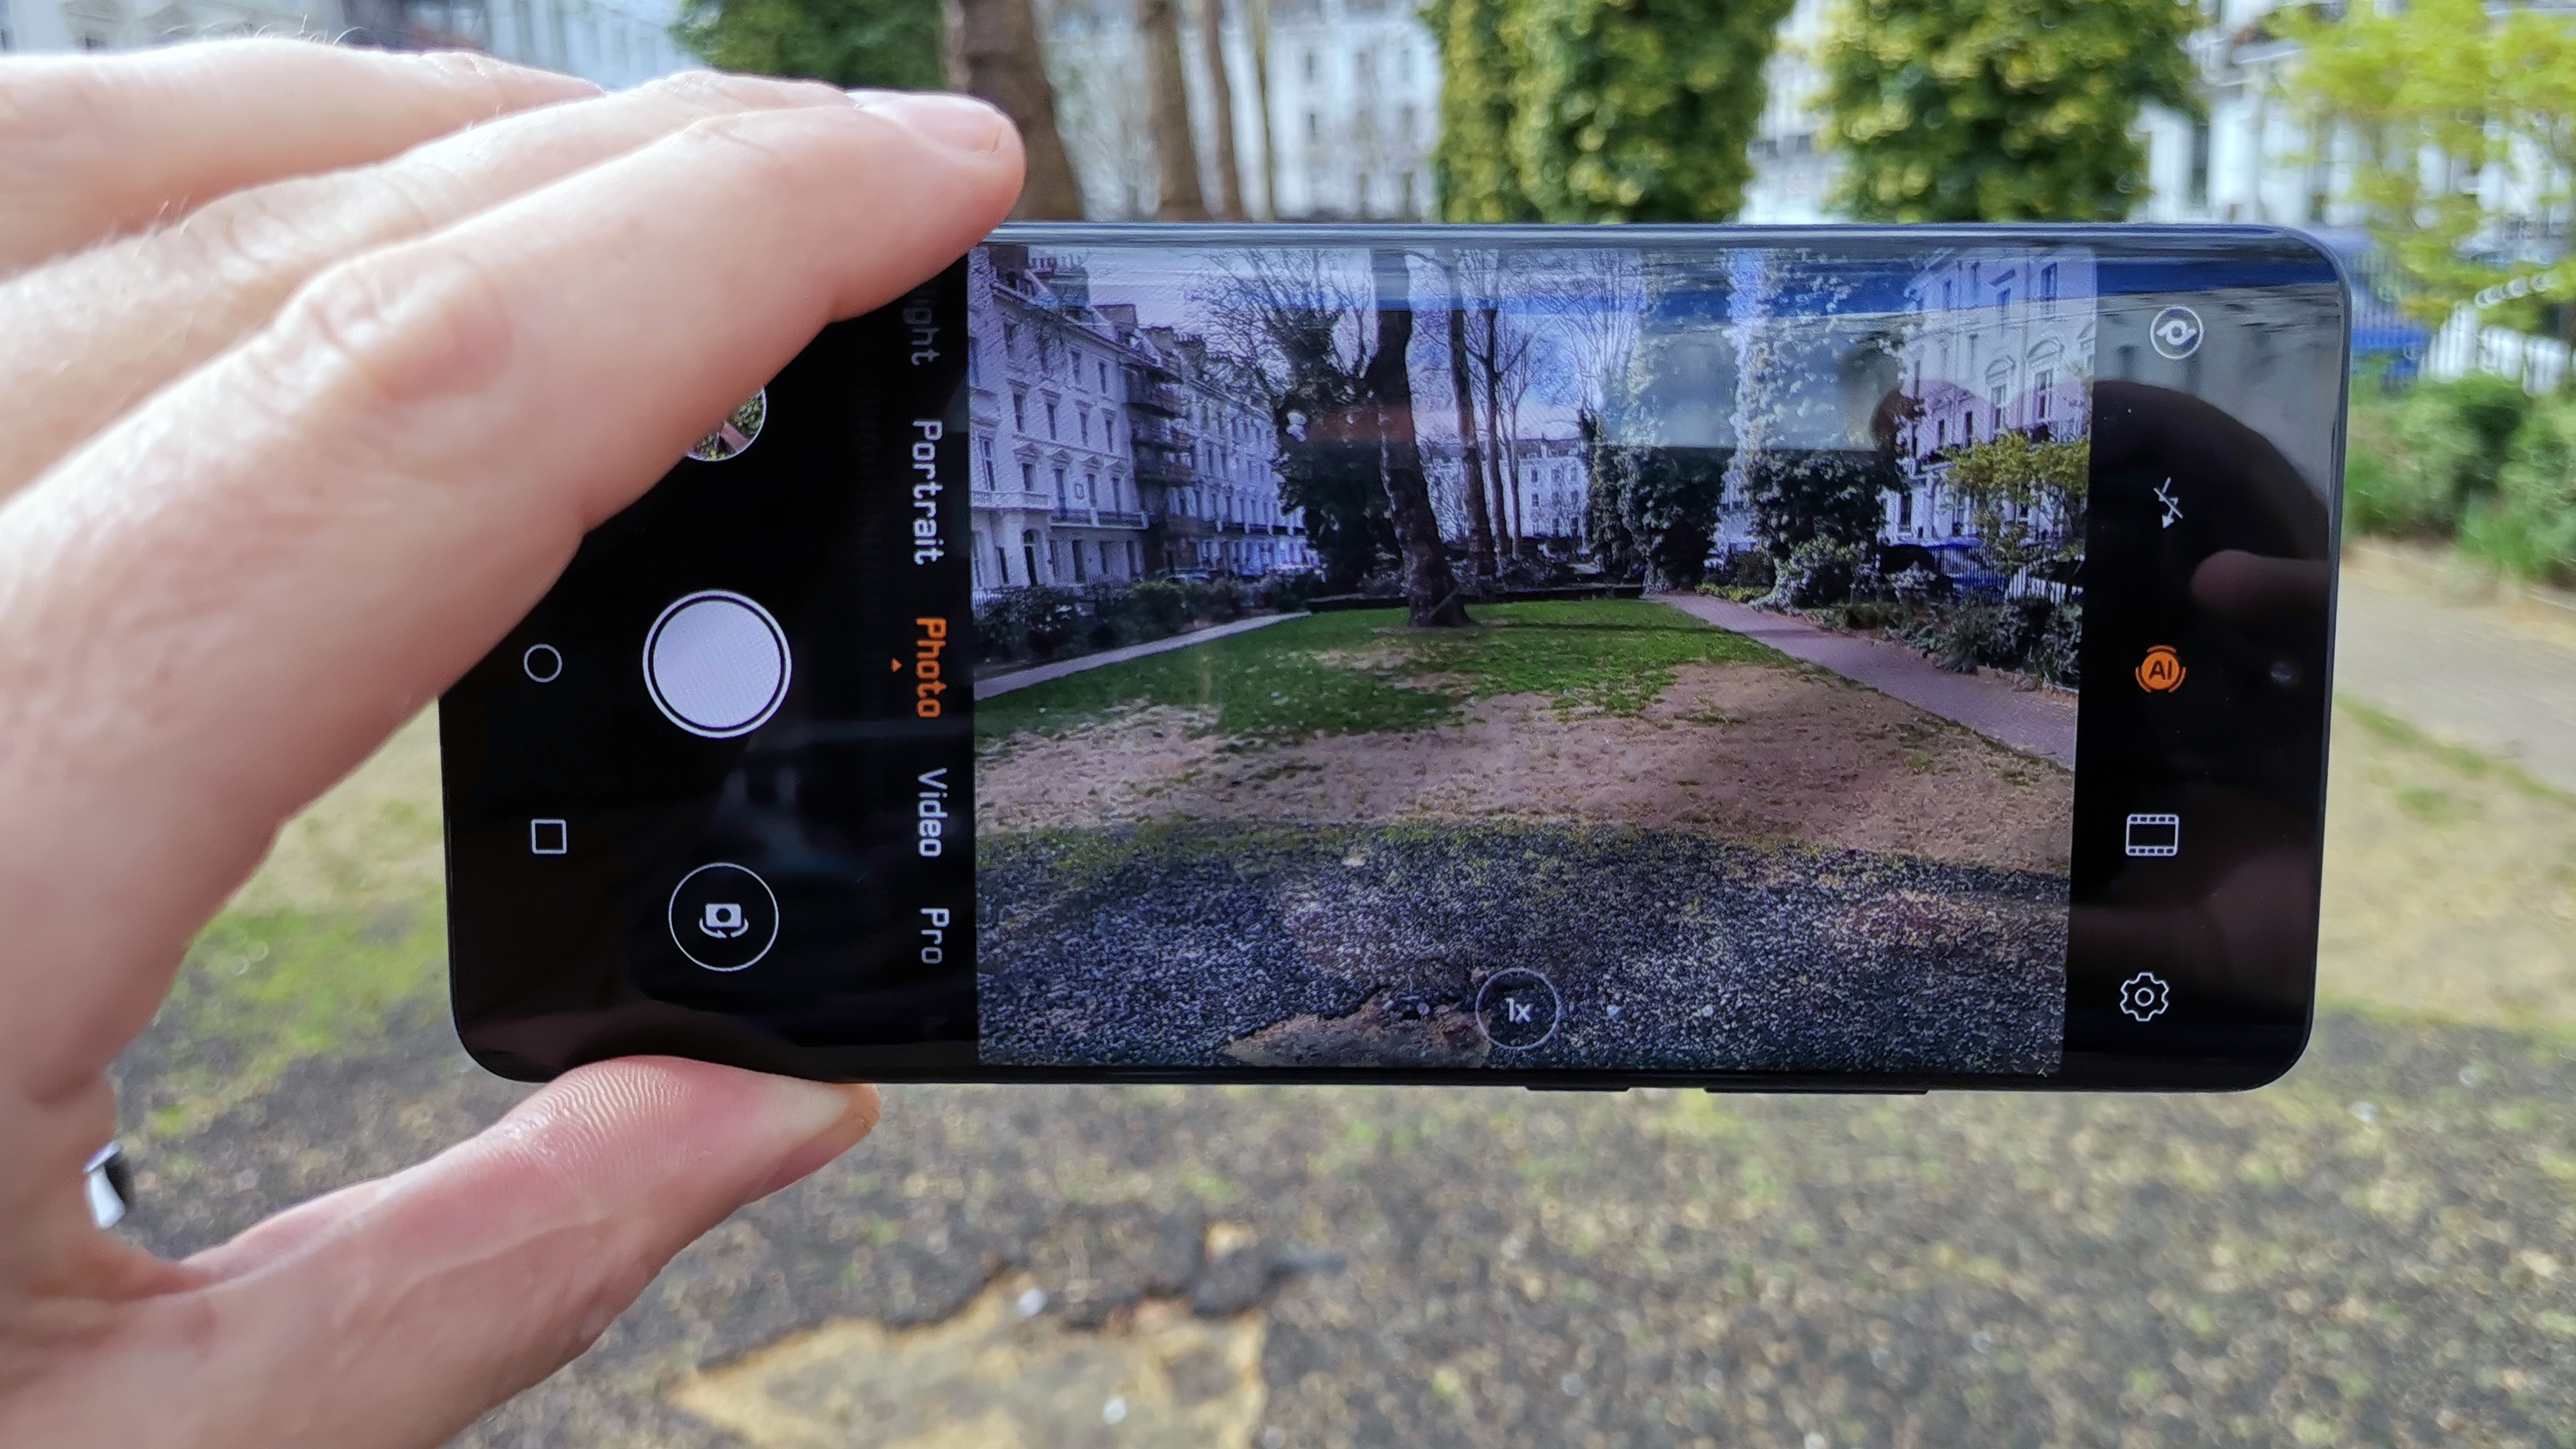 Huawei P30 Pro: camera review - pure imaging brilliance